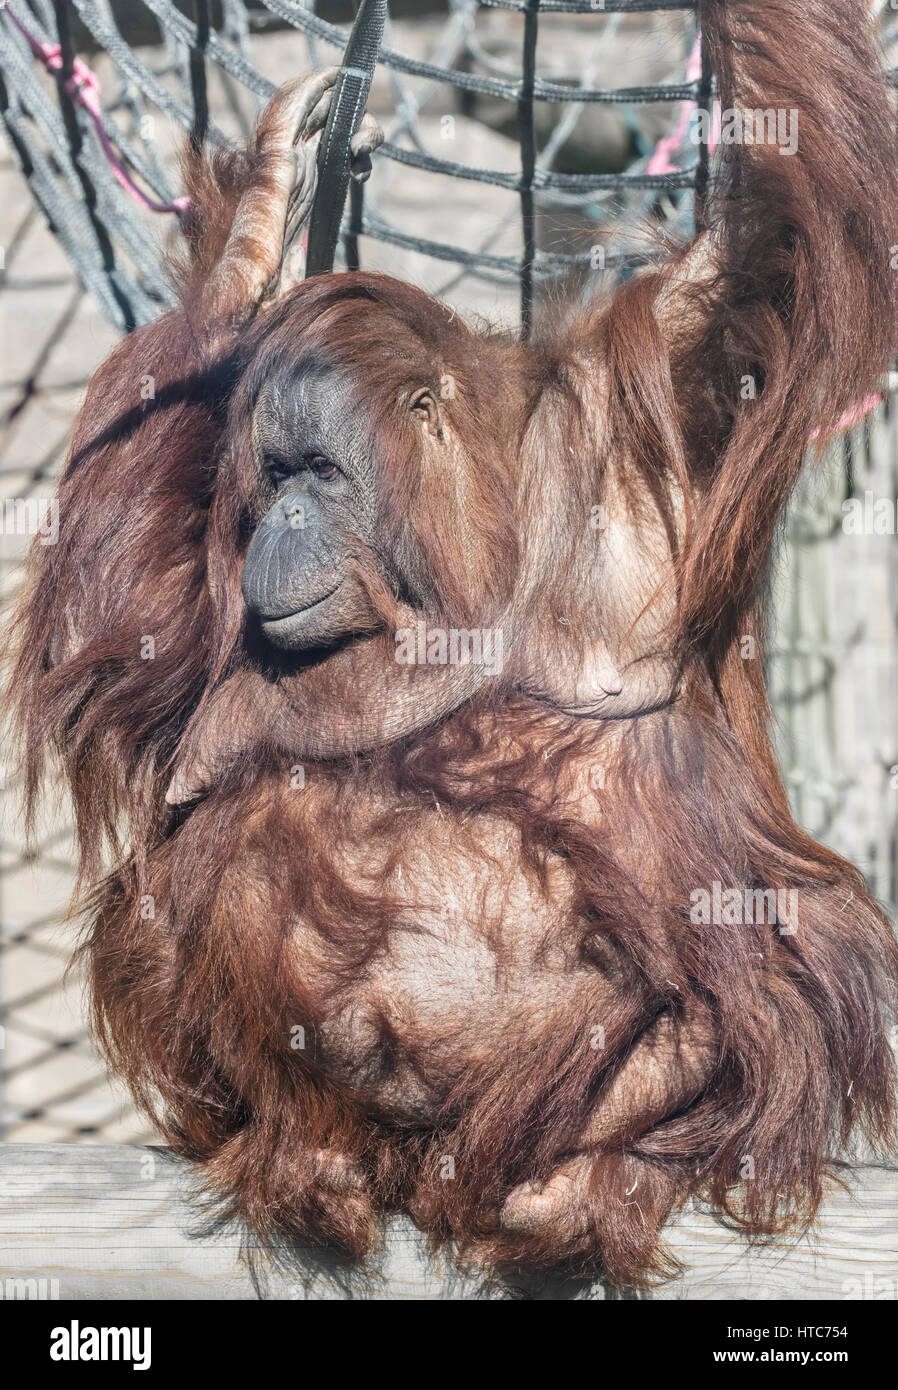 L'orang-outan, Zoo Tywcross, Leicestershire Photo Stock